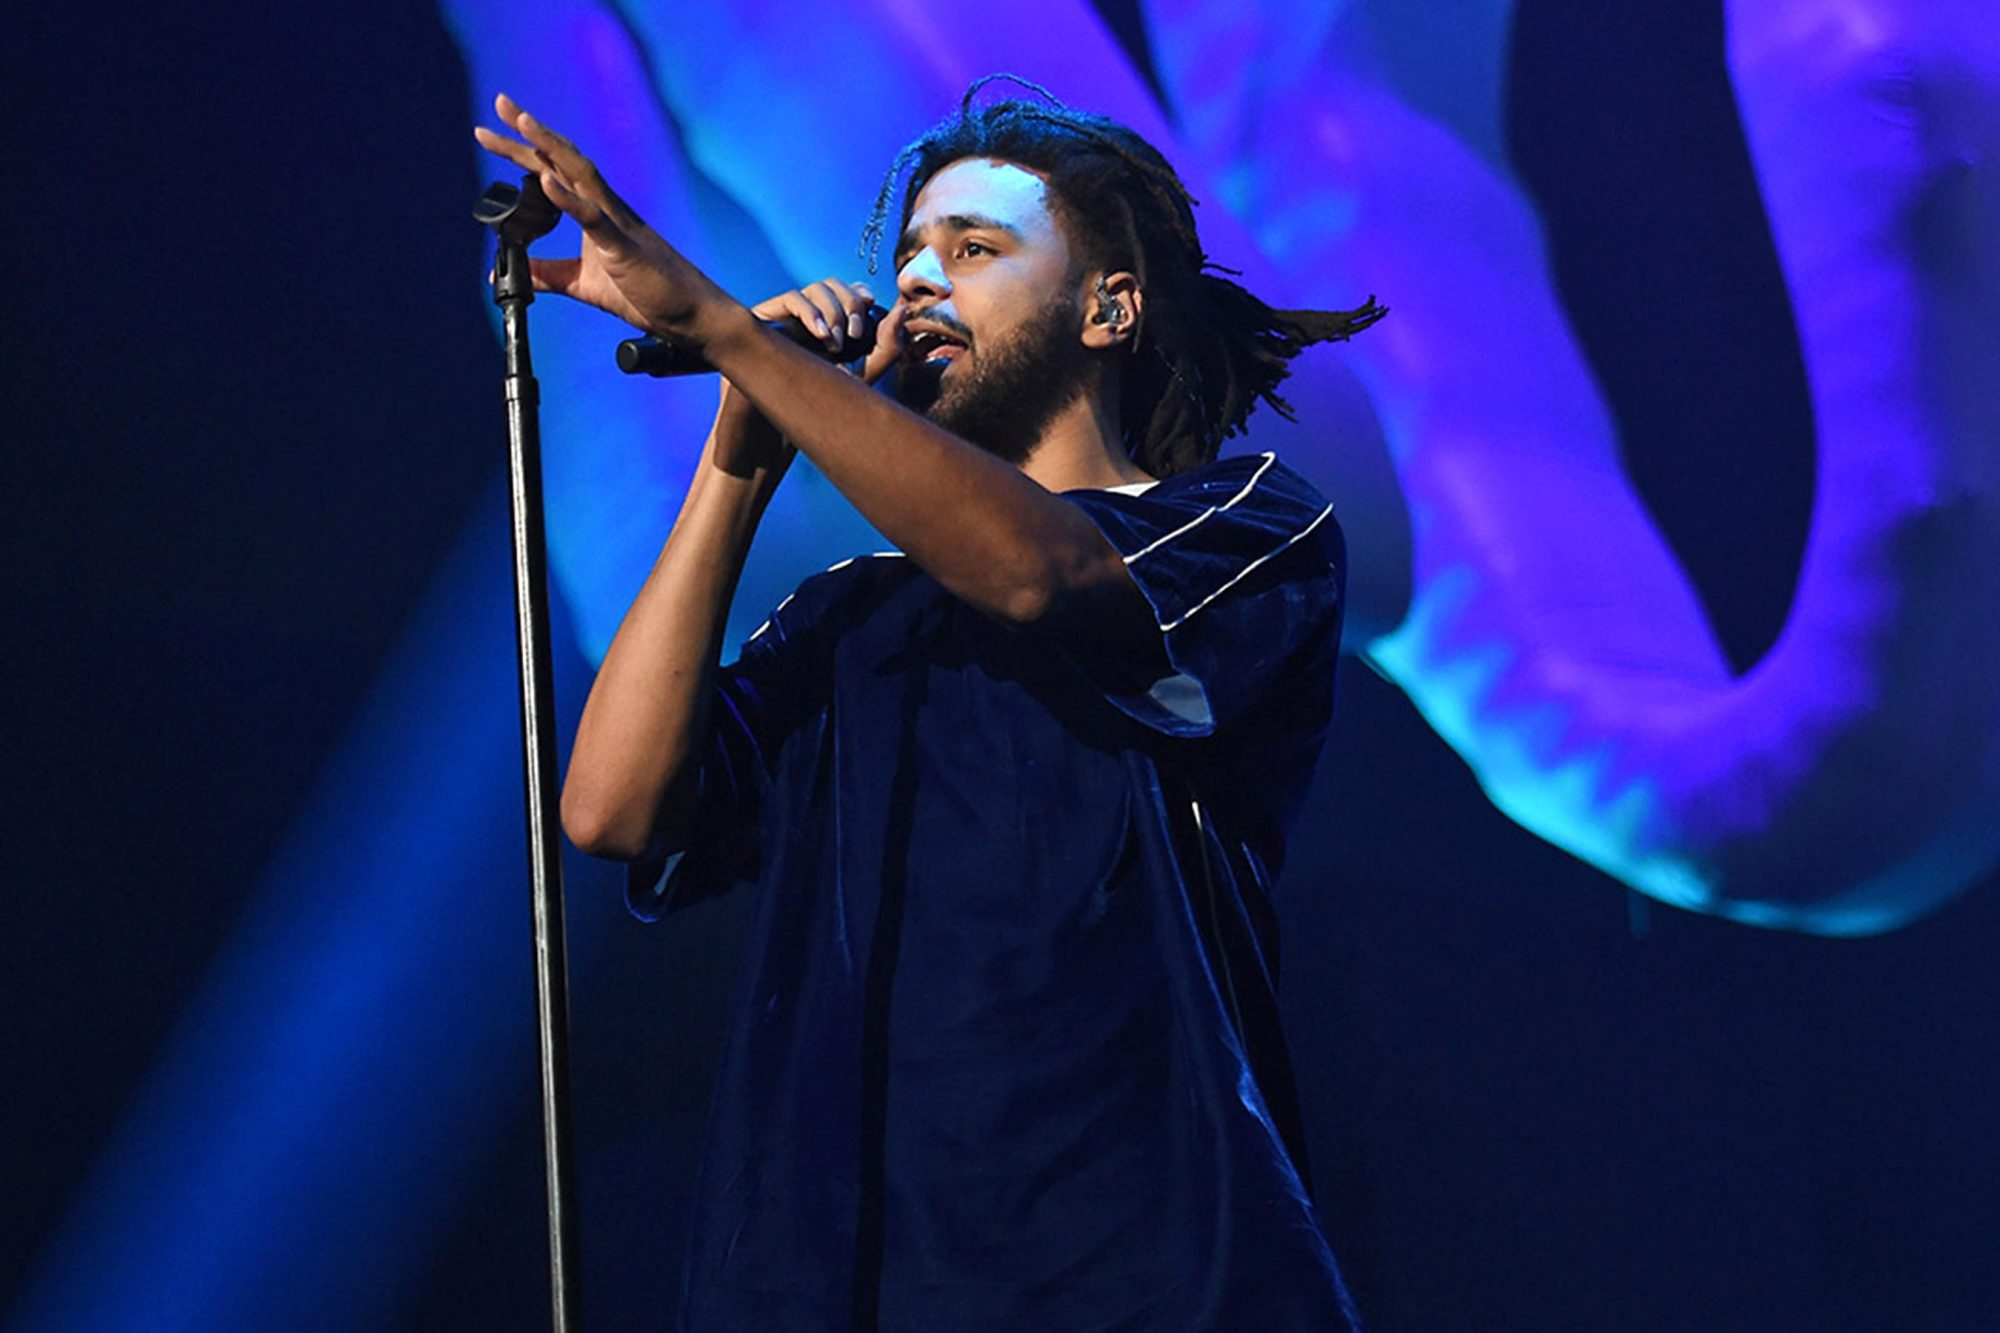 J. Cole featuring Young Thug, Jaden Smith and Earthgang